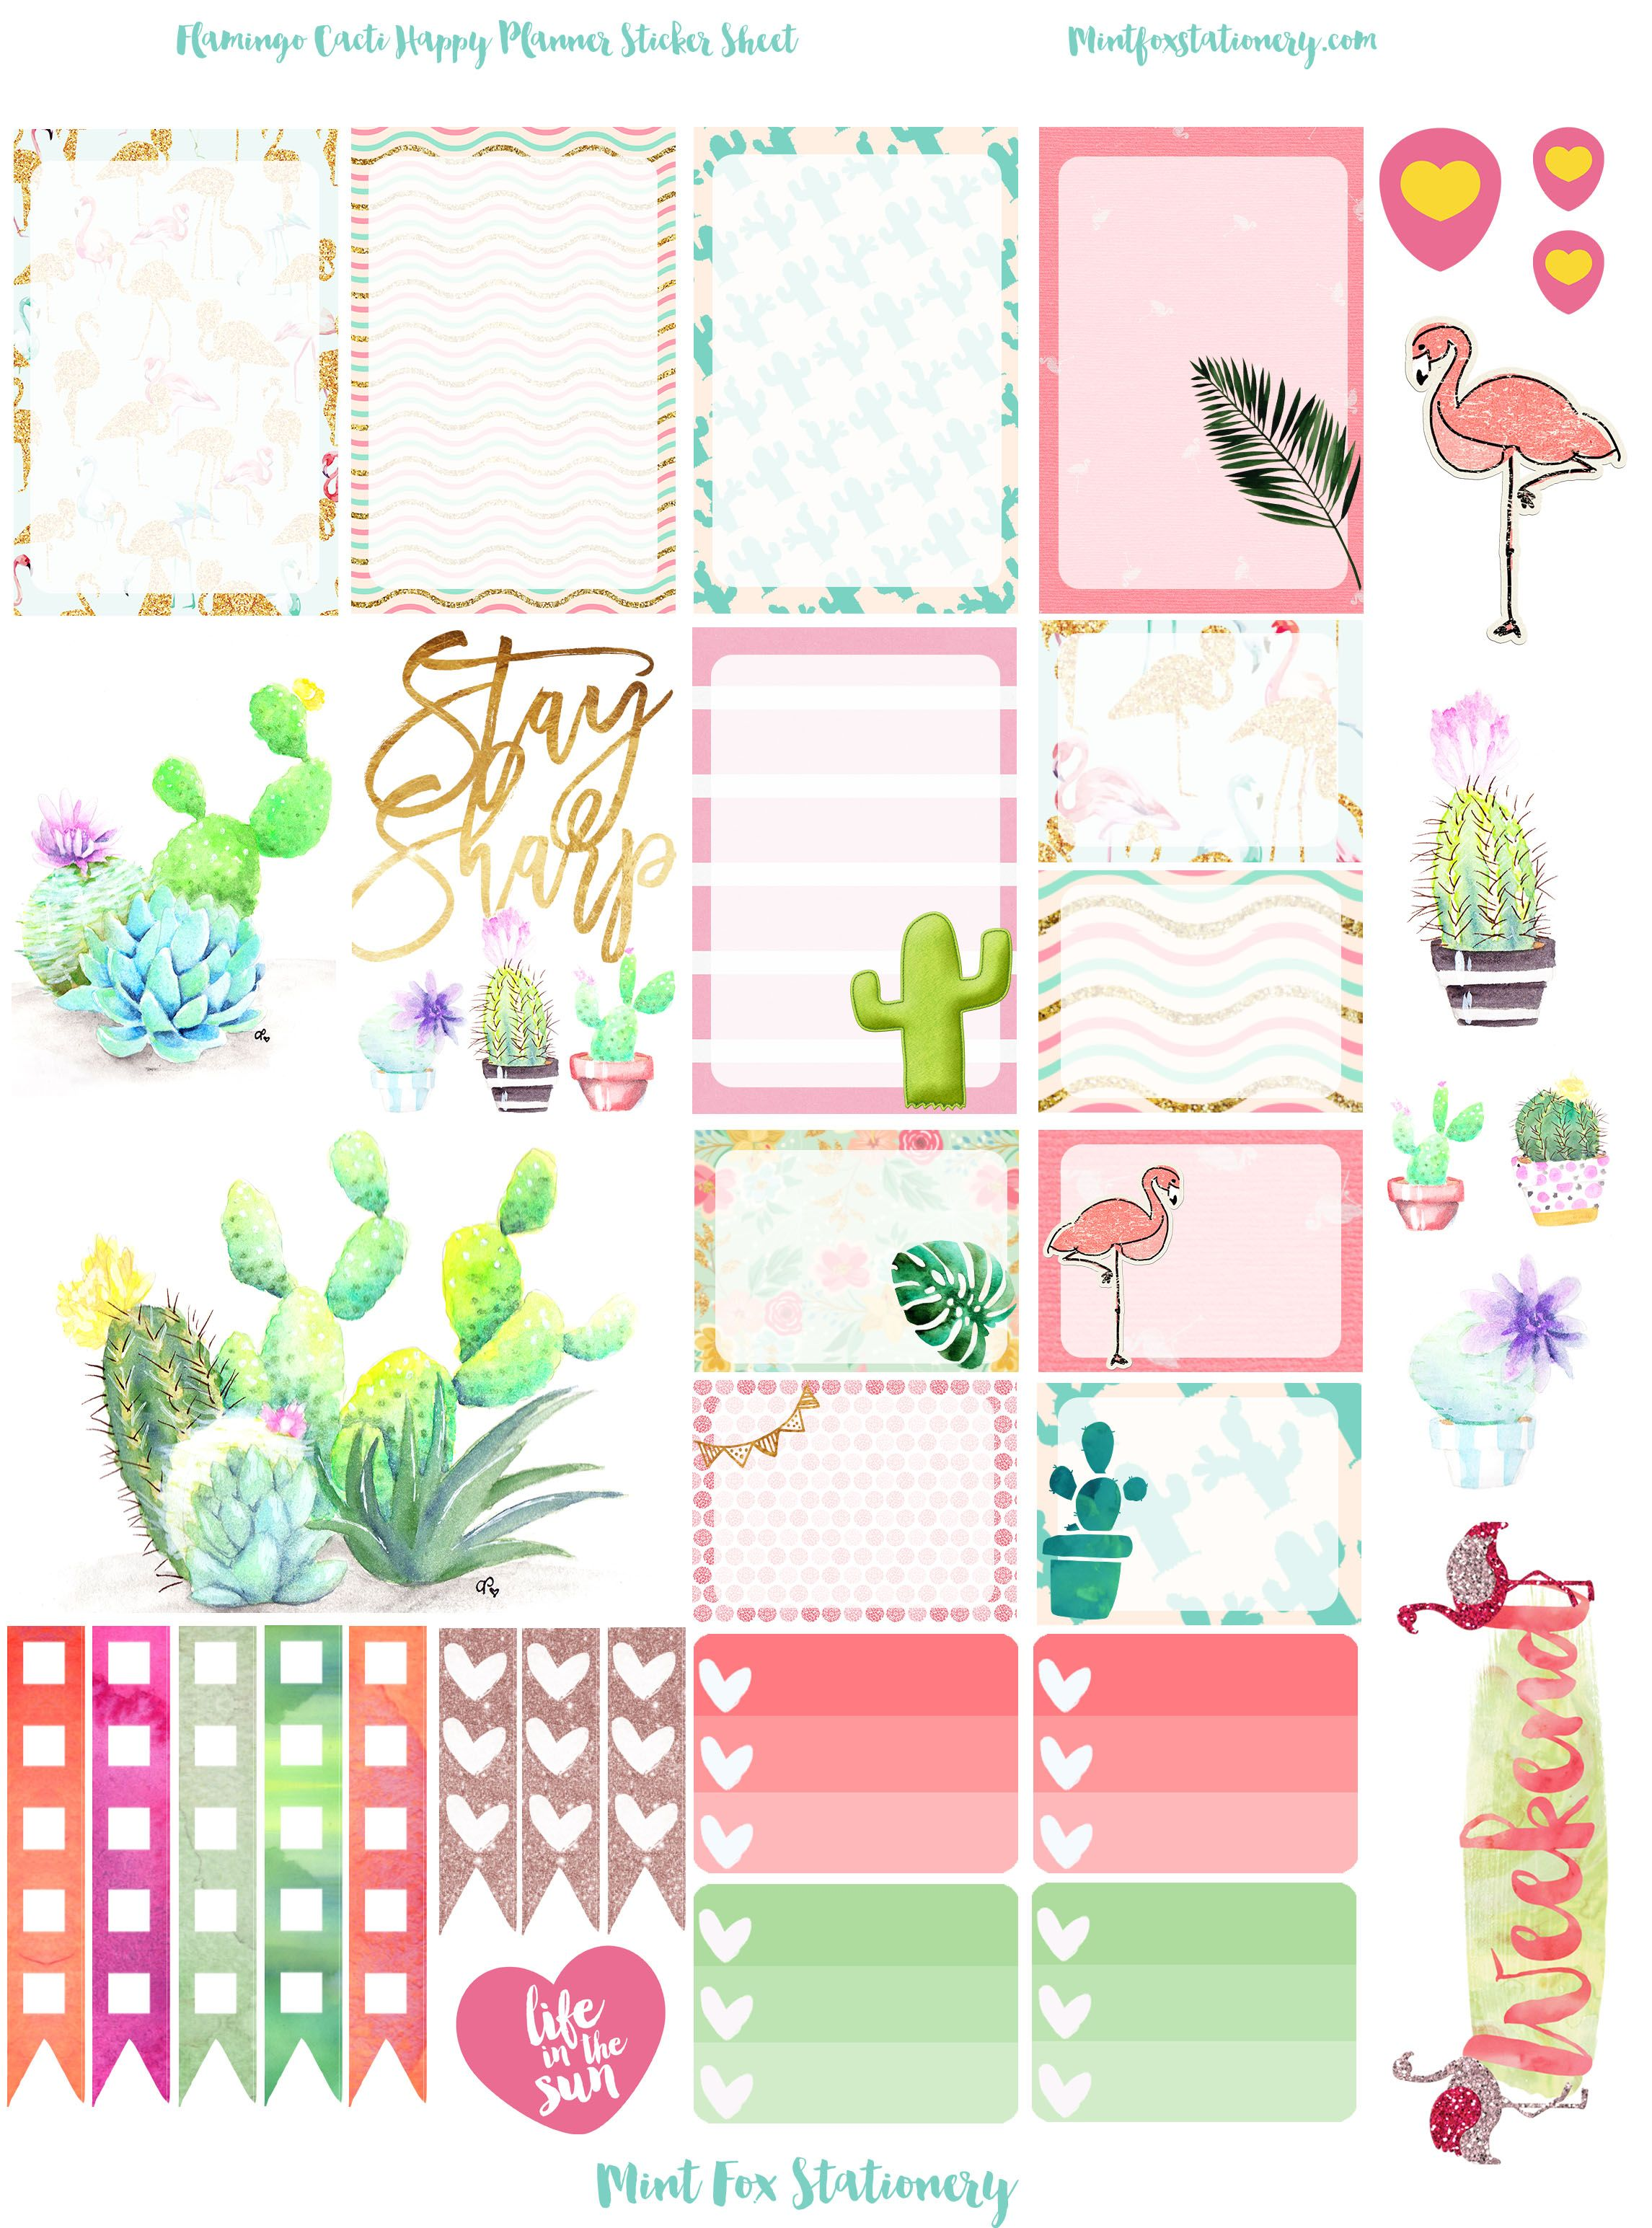 Flamingo Cacti Happy Planner Sticker Sheet at Mint Fox Stationary ...